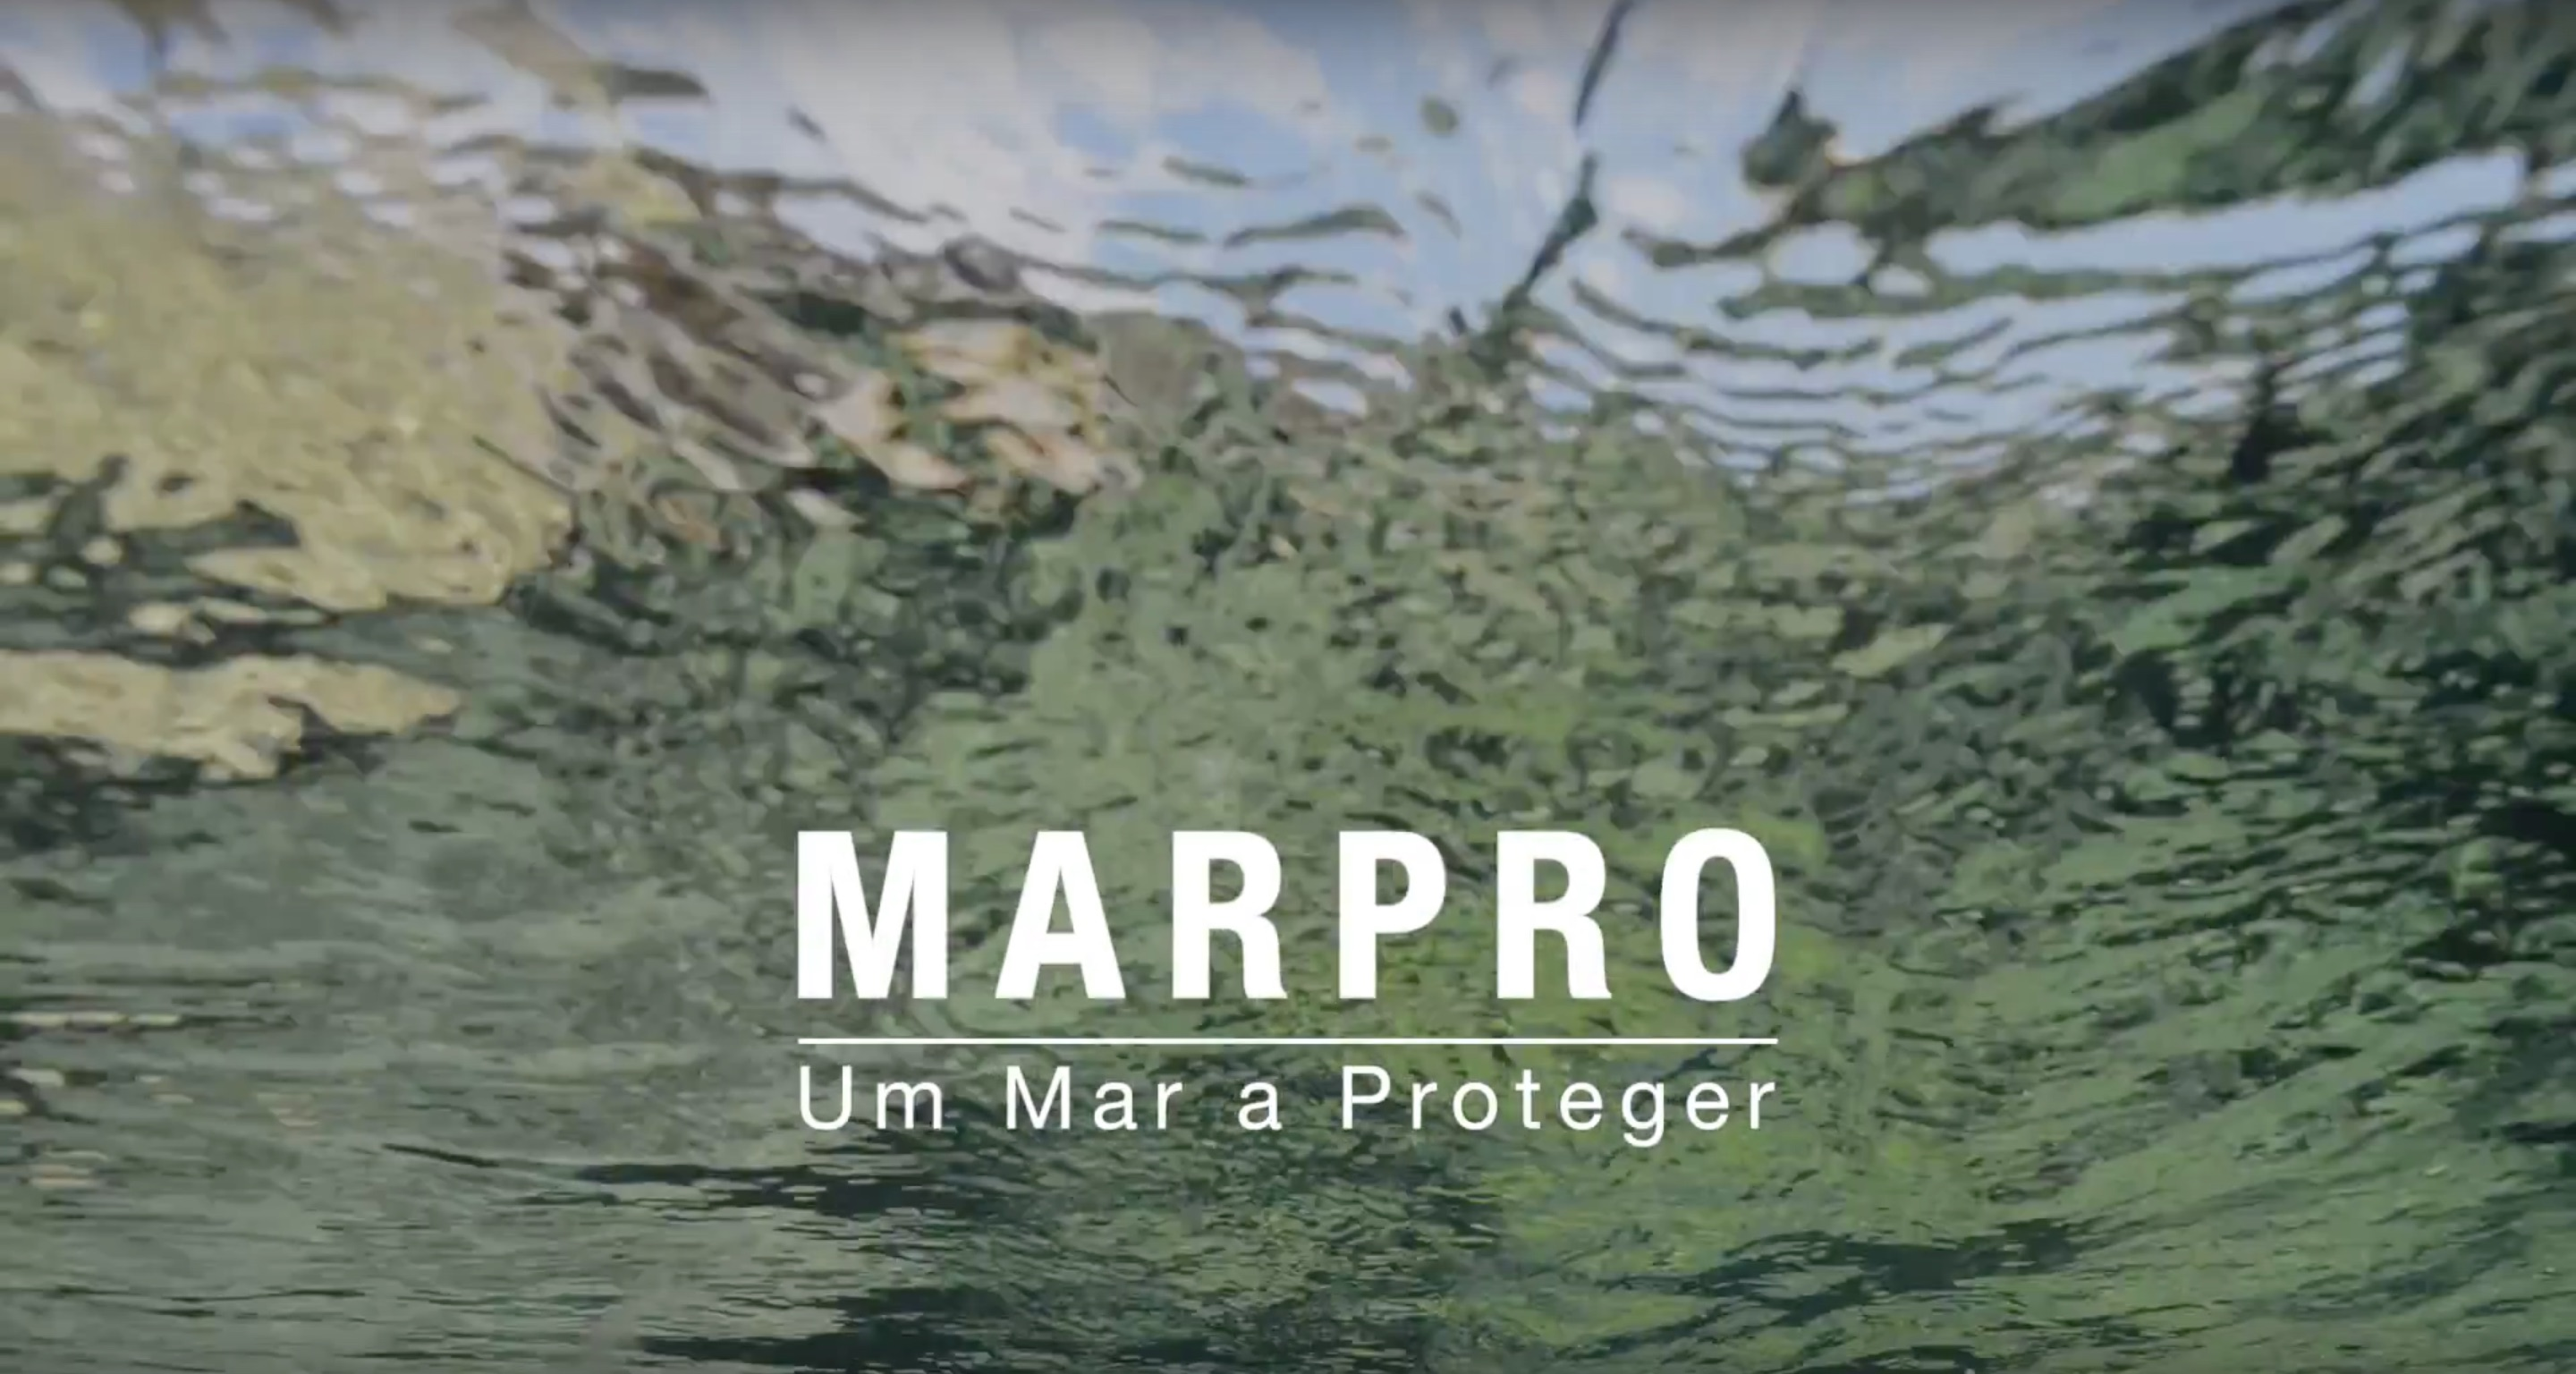 LIFE+ MarPro Documentary: Marine Protected Areas